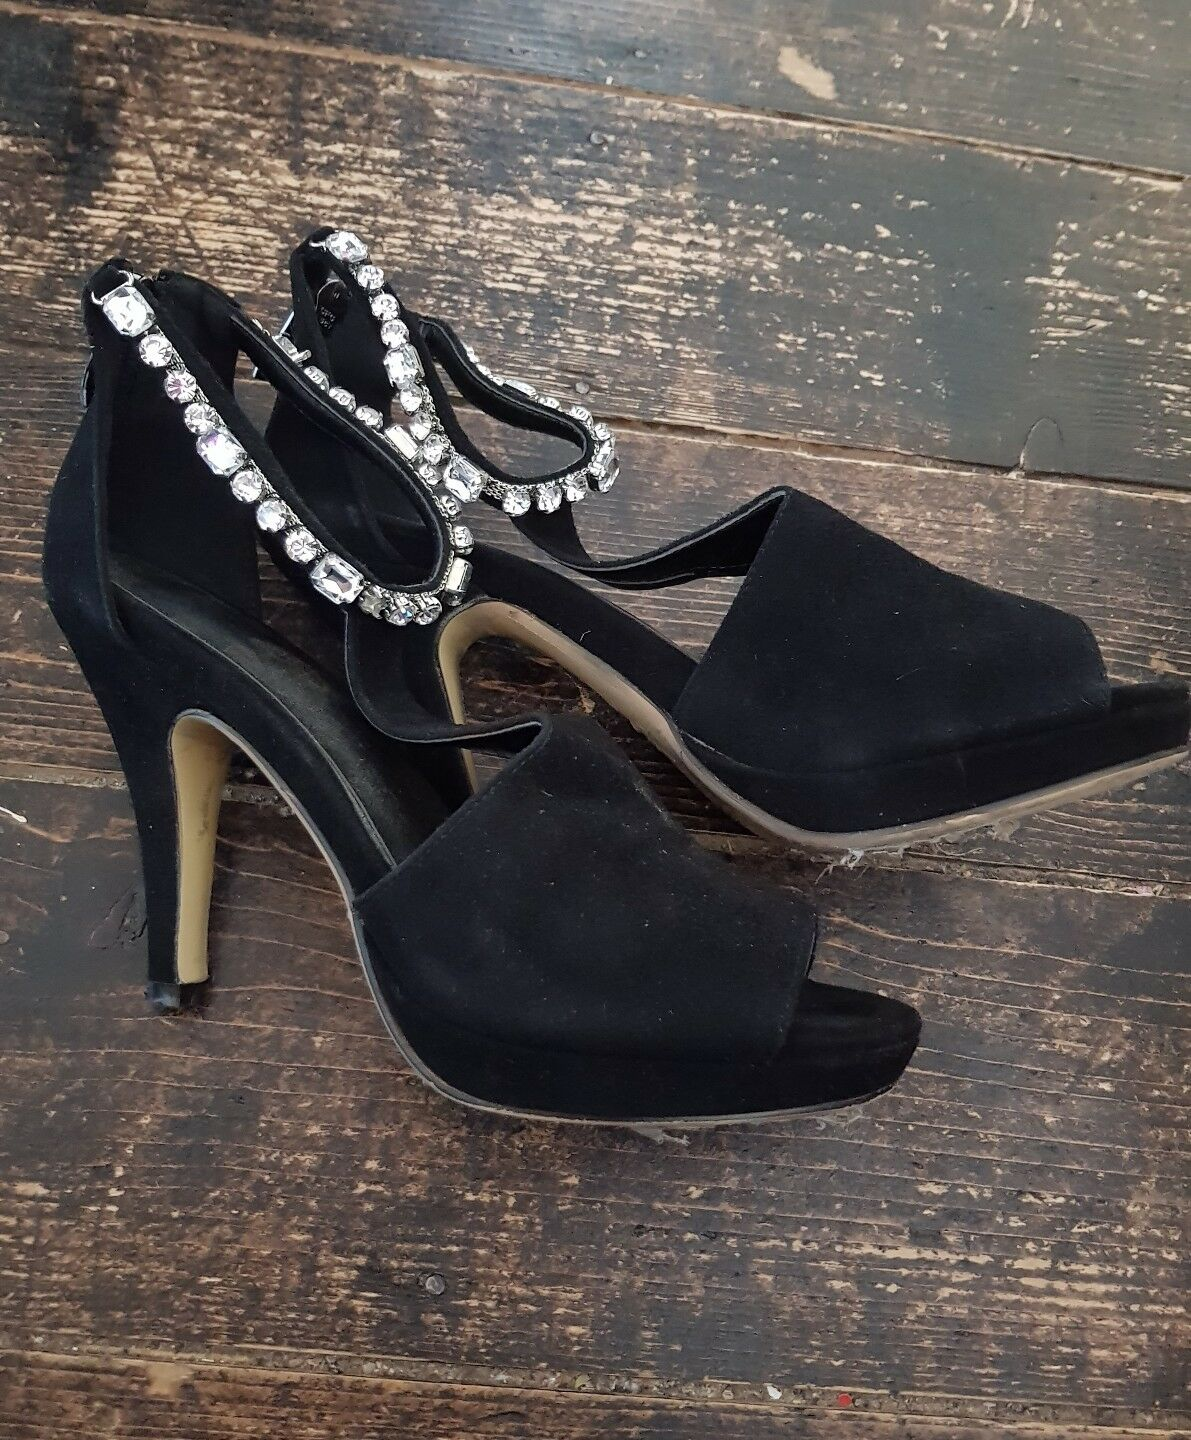 Ladies Black Diamonte Heels High Heels Diamonte Size 3 b09159